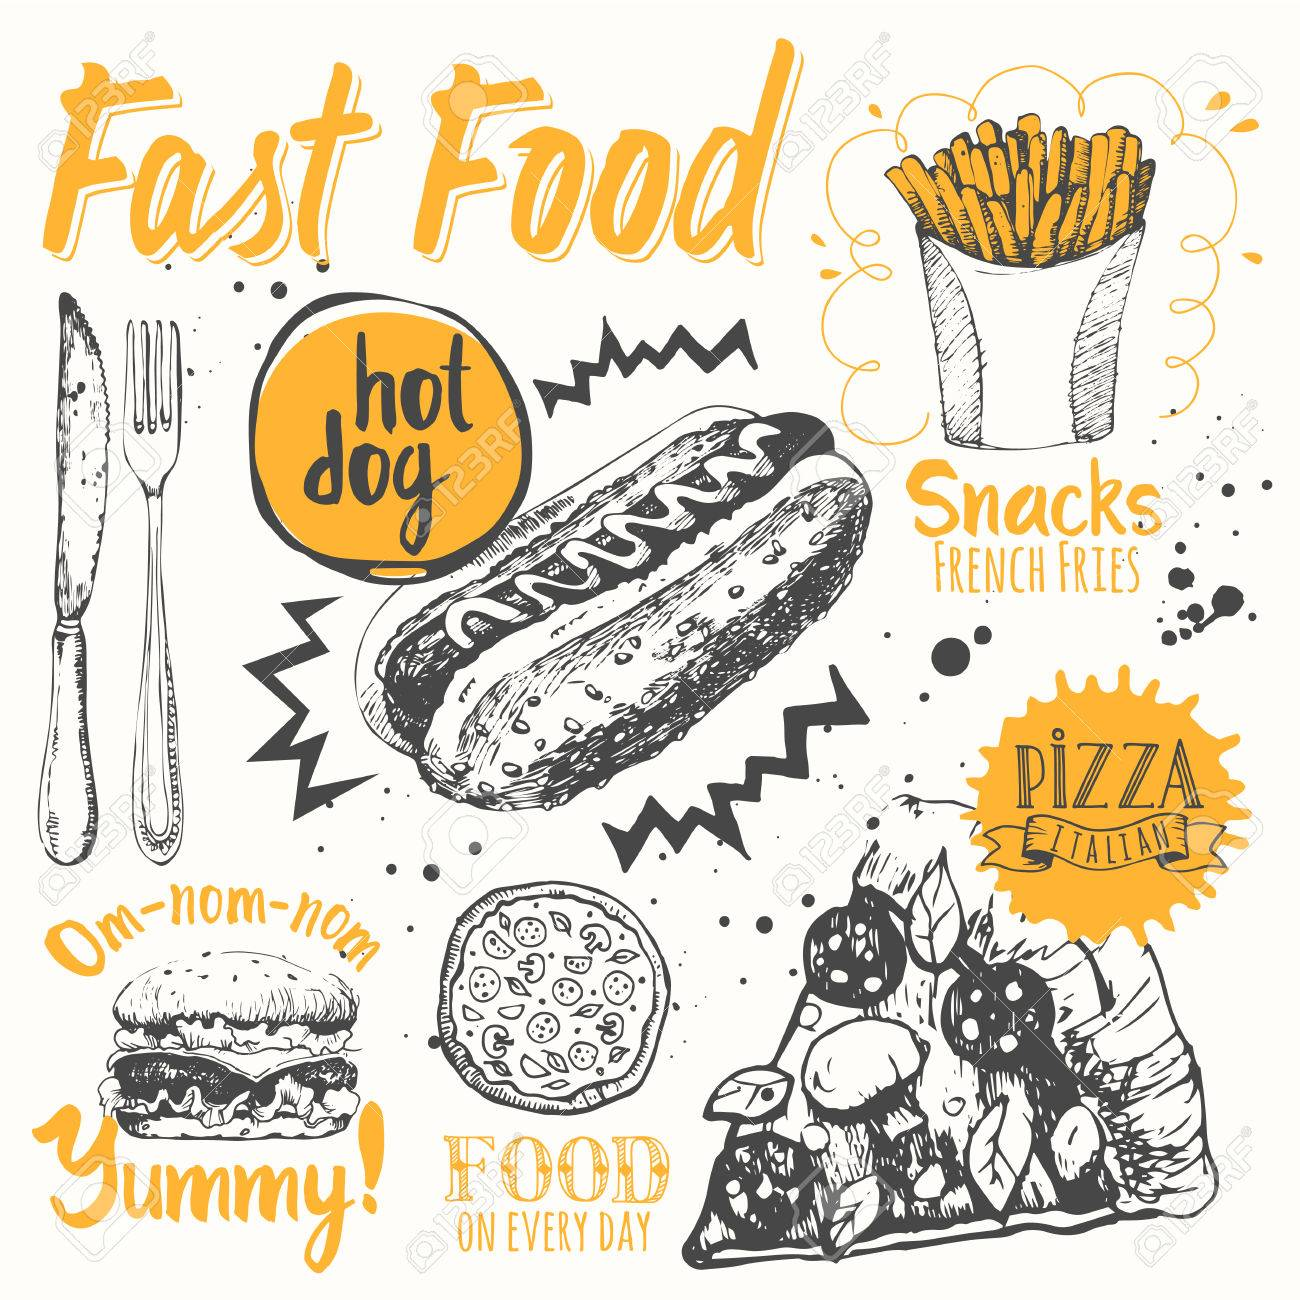 Funny labels of street food: pizza, snacks, sandwiches and hot dog. - 49287732